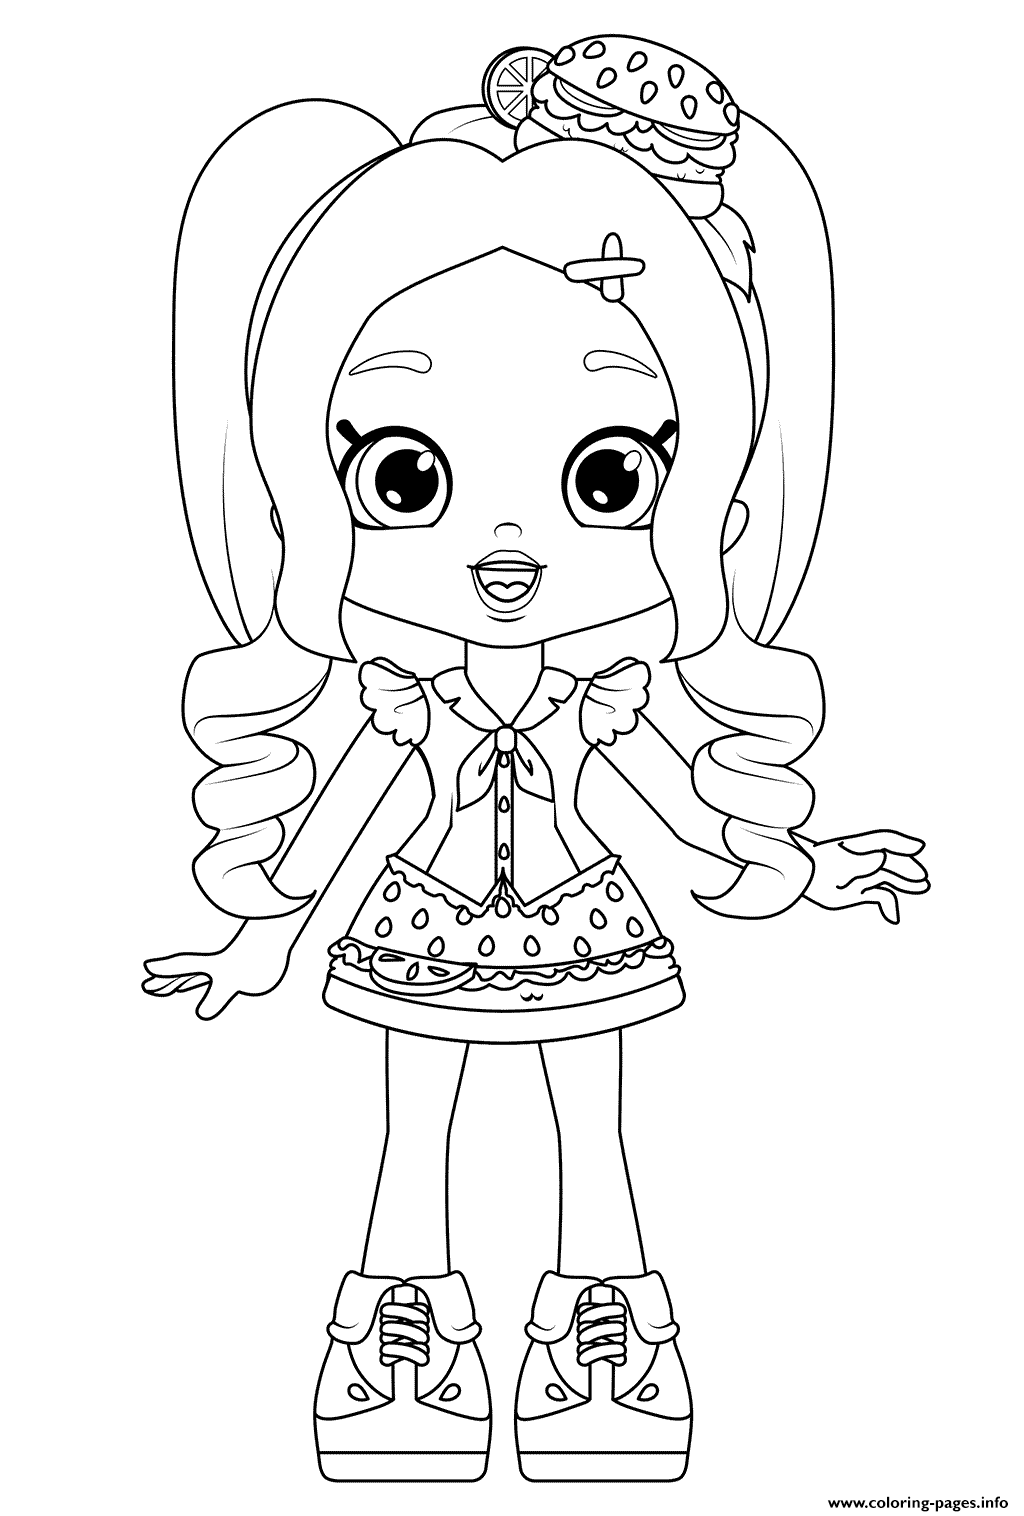 Chelsea Cheeseburger Coloring Pages Printable